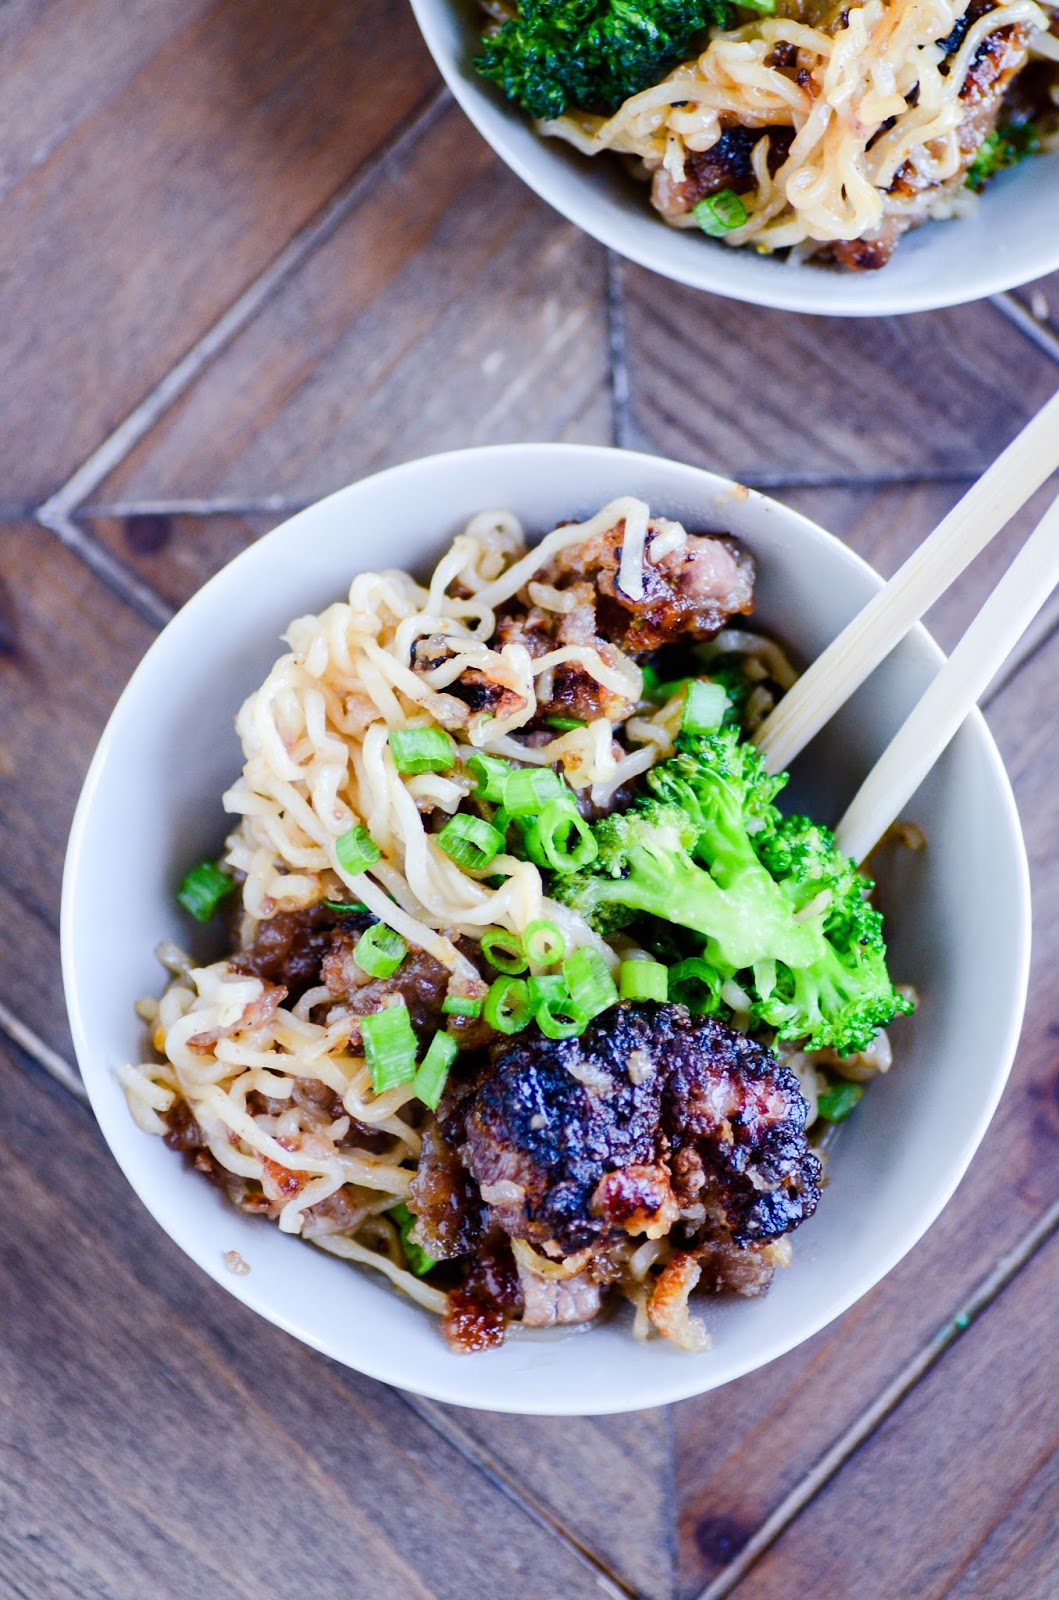 This recipe is the bomb.com. I've never been a beef and broccoli fan, but one bite of this completely changed my mind. A little sweet, a lot of flavor, and one perfect better-than-take-out family dinner.